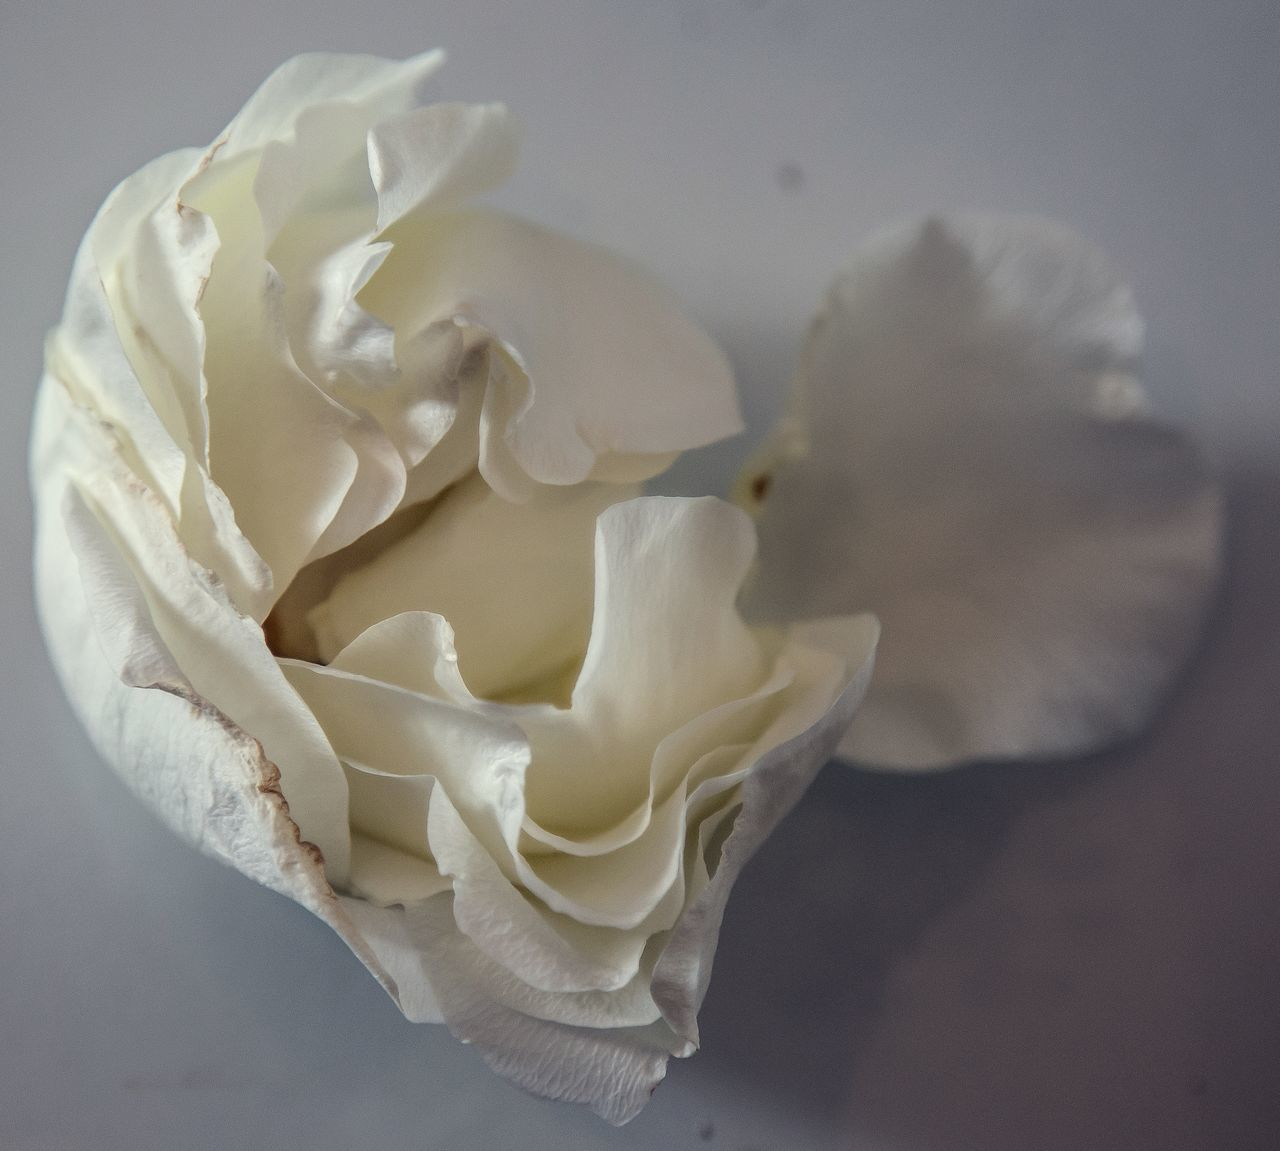 Beauty In Nature Blooming Close-up Day Flower Flower Head Fragility Freshness Growth Indoors  Nature No People Petal Rose - Flower Rose Petals Studio Shot White Color